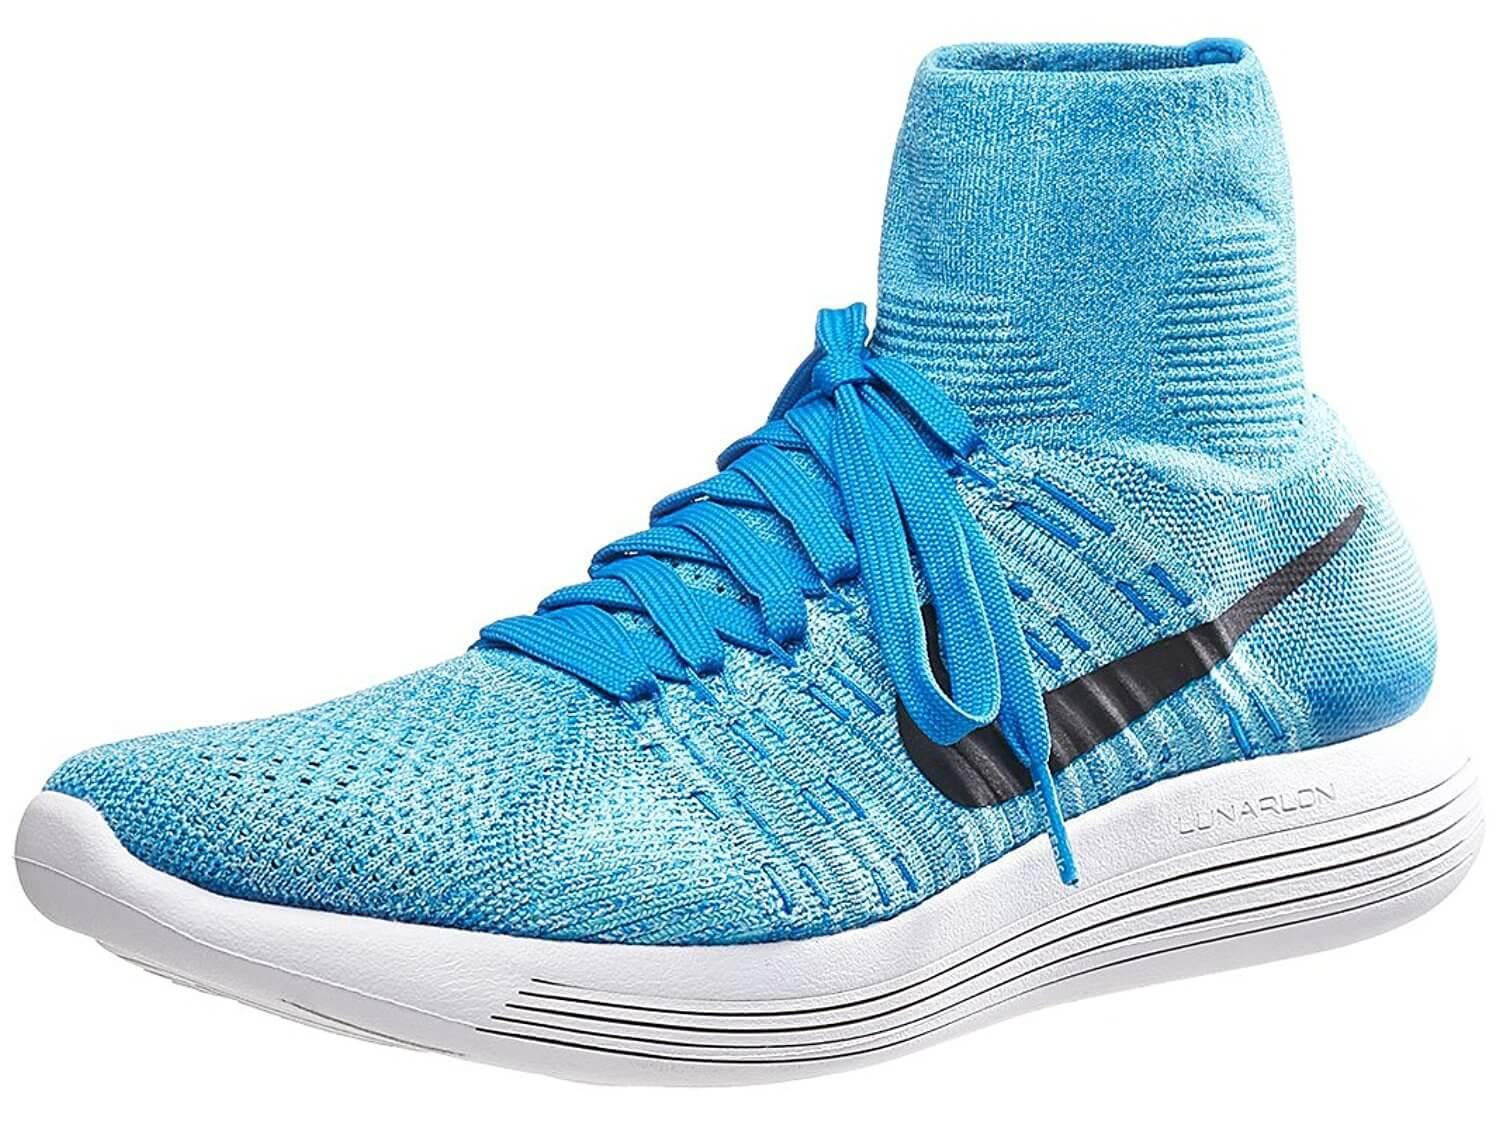 on sale ad45e 4cf52 Nike LunarEpic Flyknit